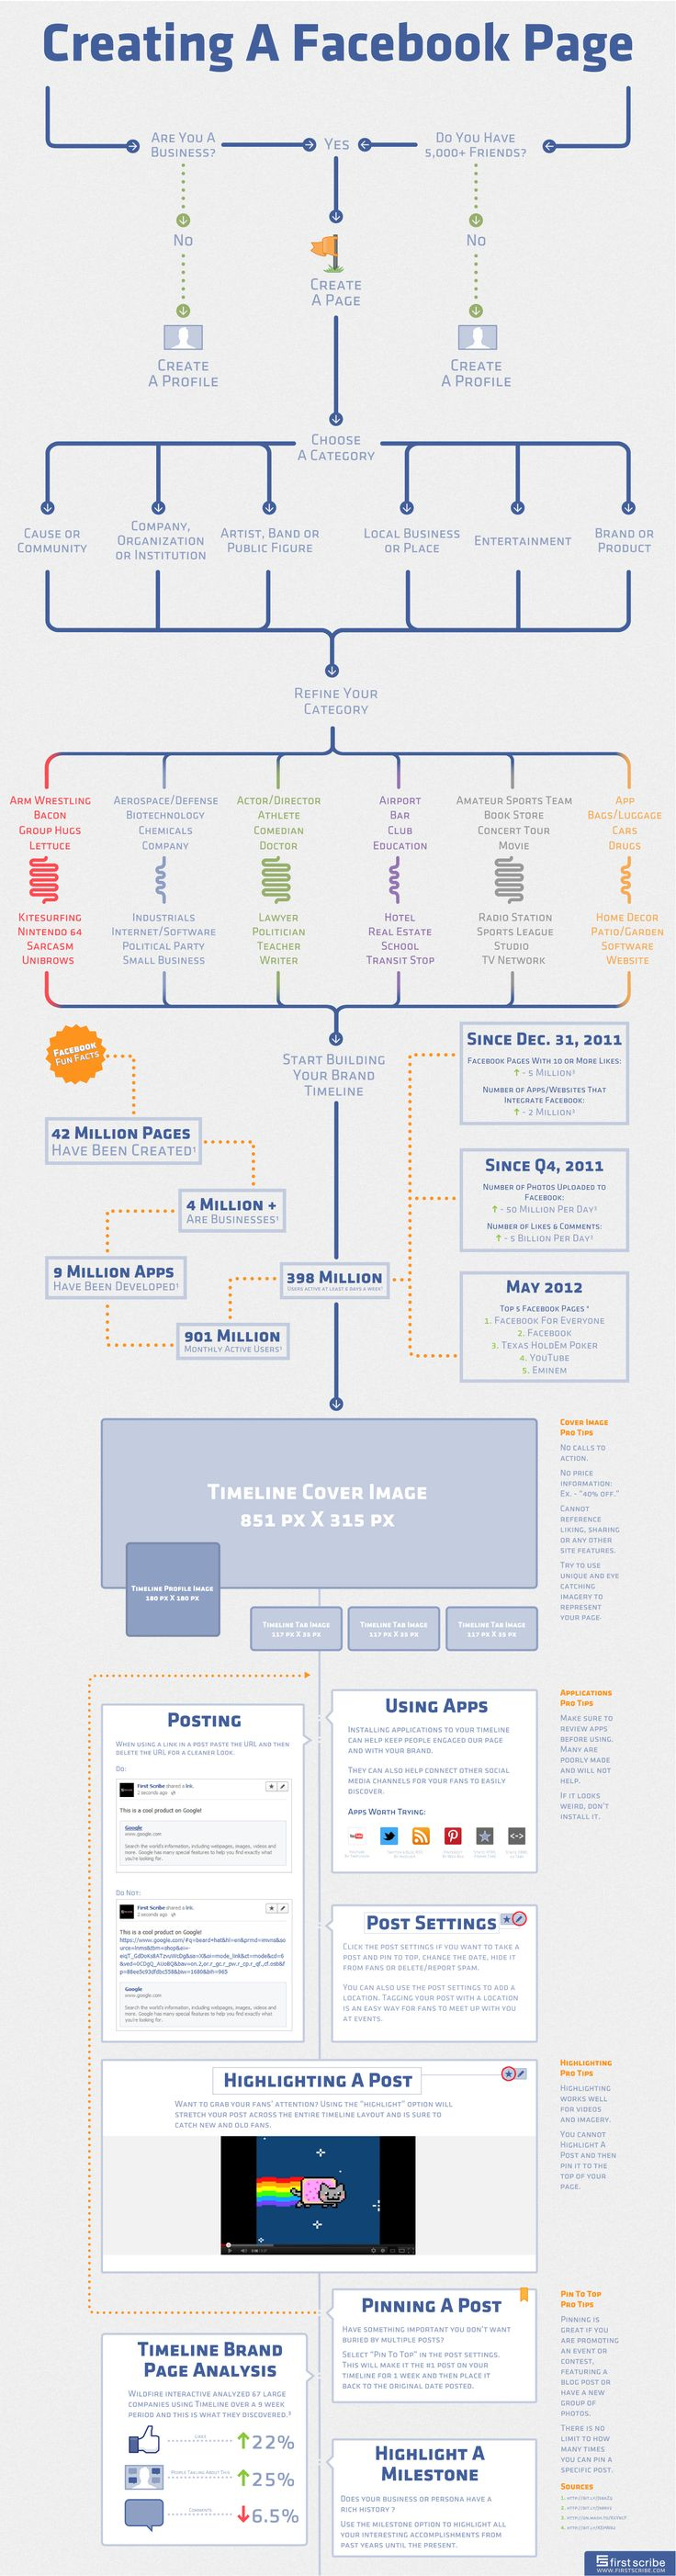 infographic creating a facebook profile